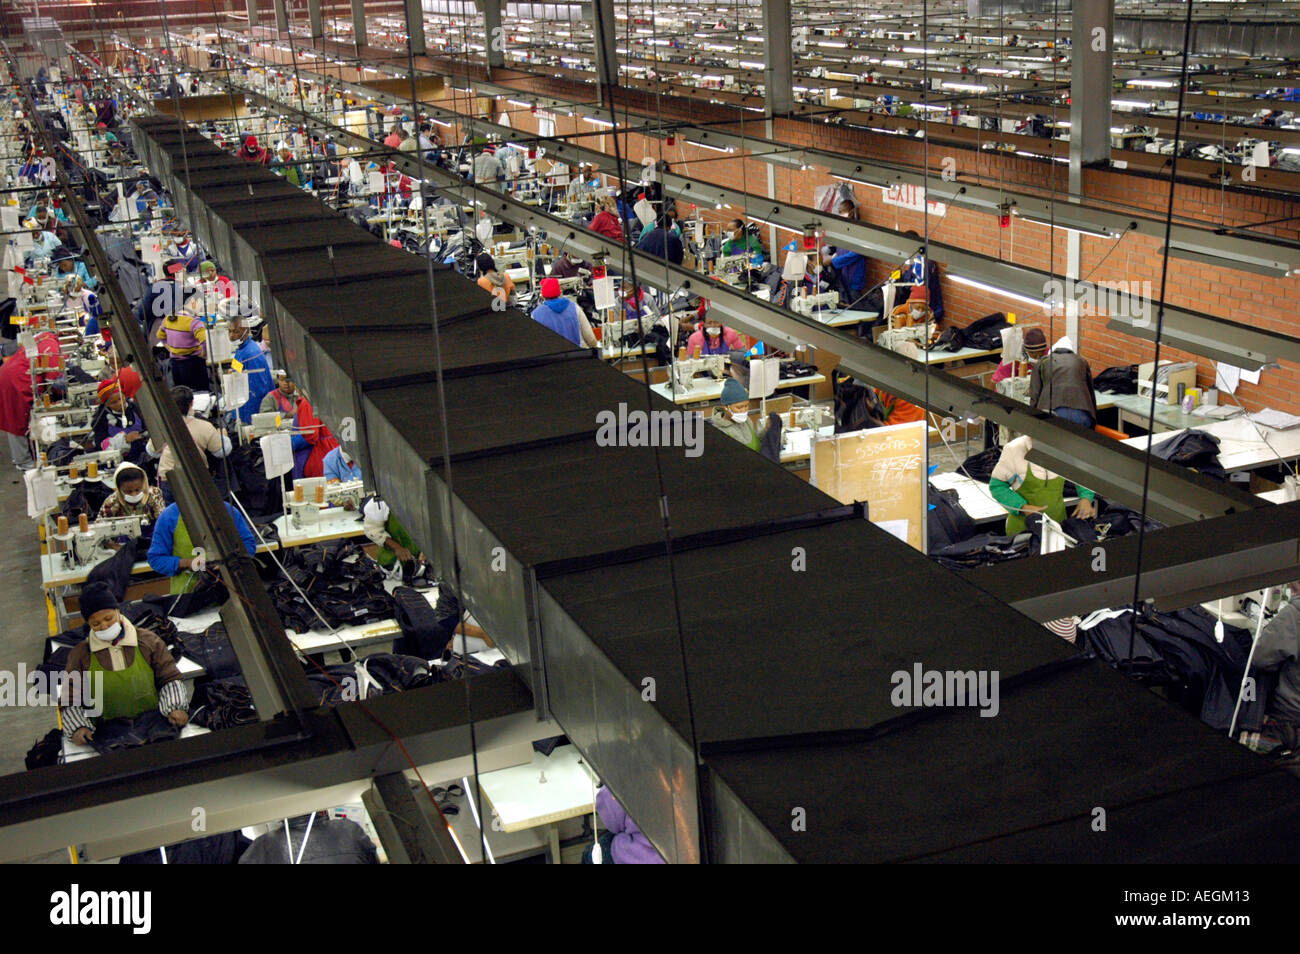 Chinese clothing factory for making blue jeans in Lesotho Africa - Stock Image